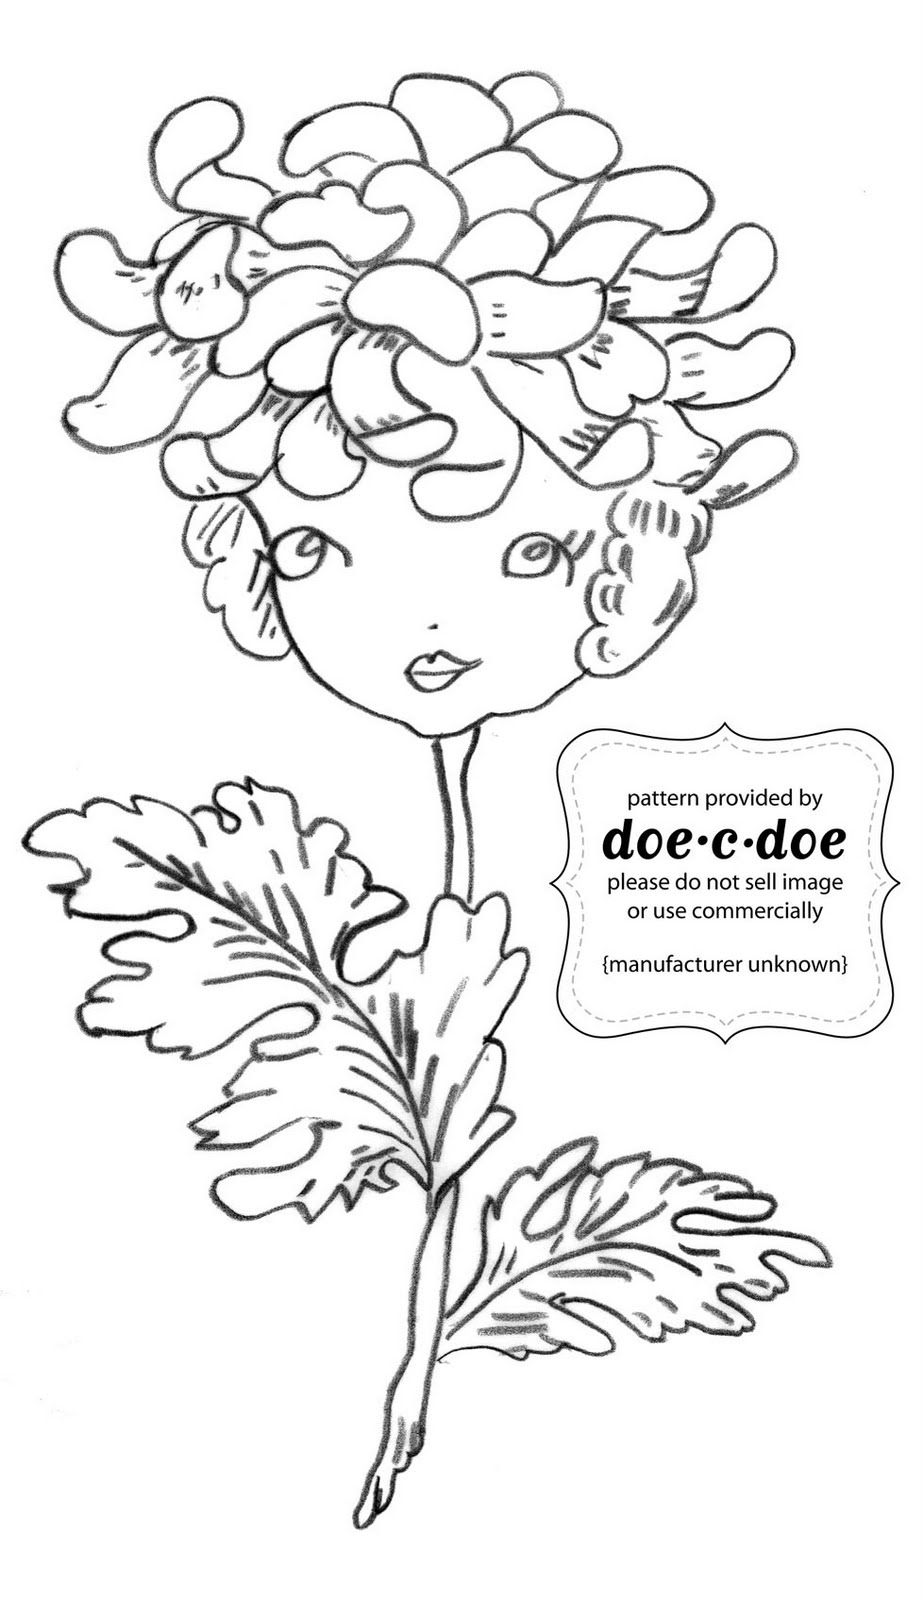 Lady flower vintage embroidery pattern from doe c doe embroidery lady flower vintage embroidery pattern from doe c doe bankloansurffo Gallery